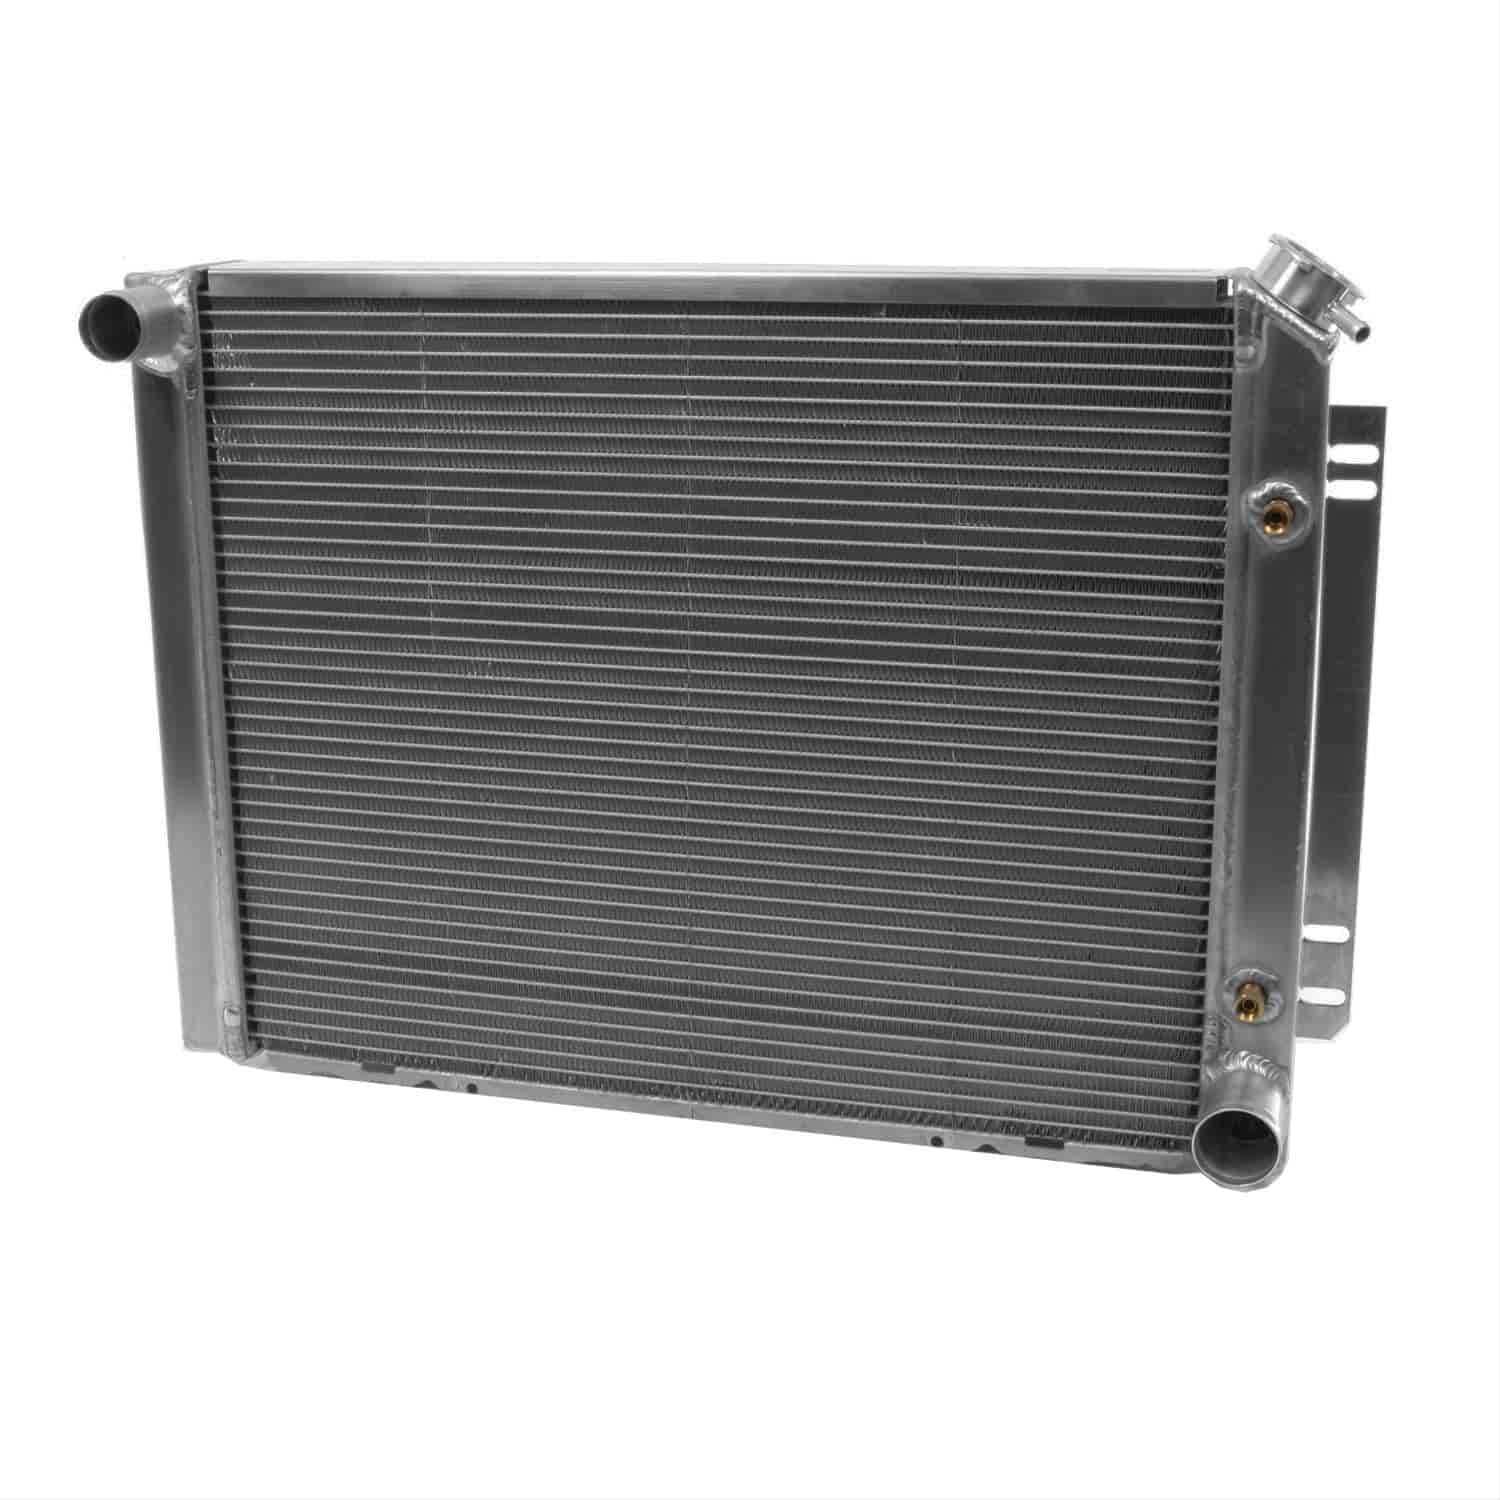 Be Cool Radiators 12009 - Be Cool Aluminator Series Direct-Fit Aluminum Radiators